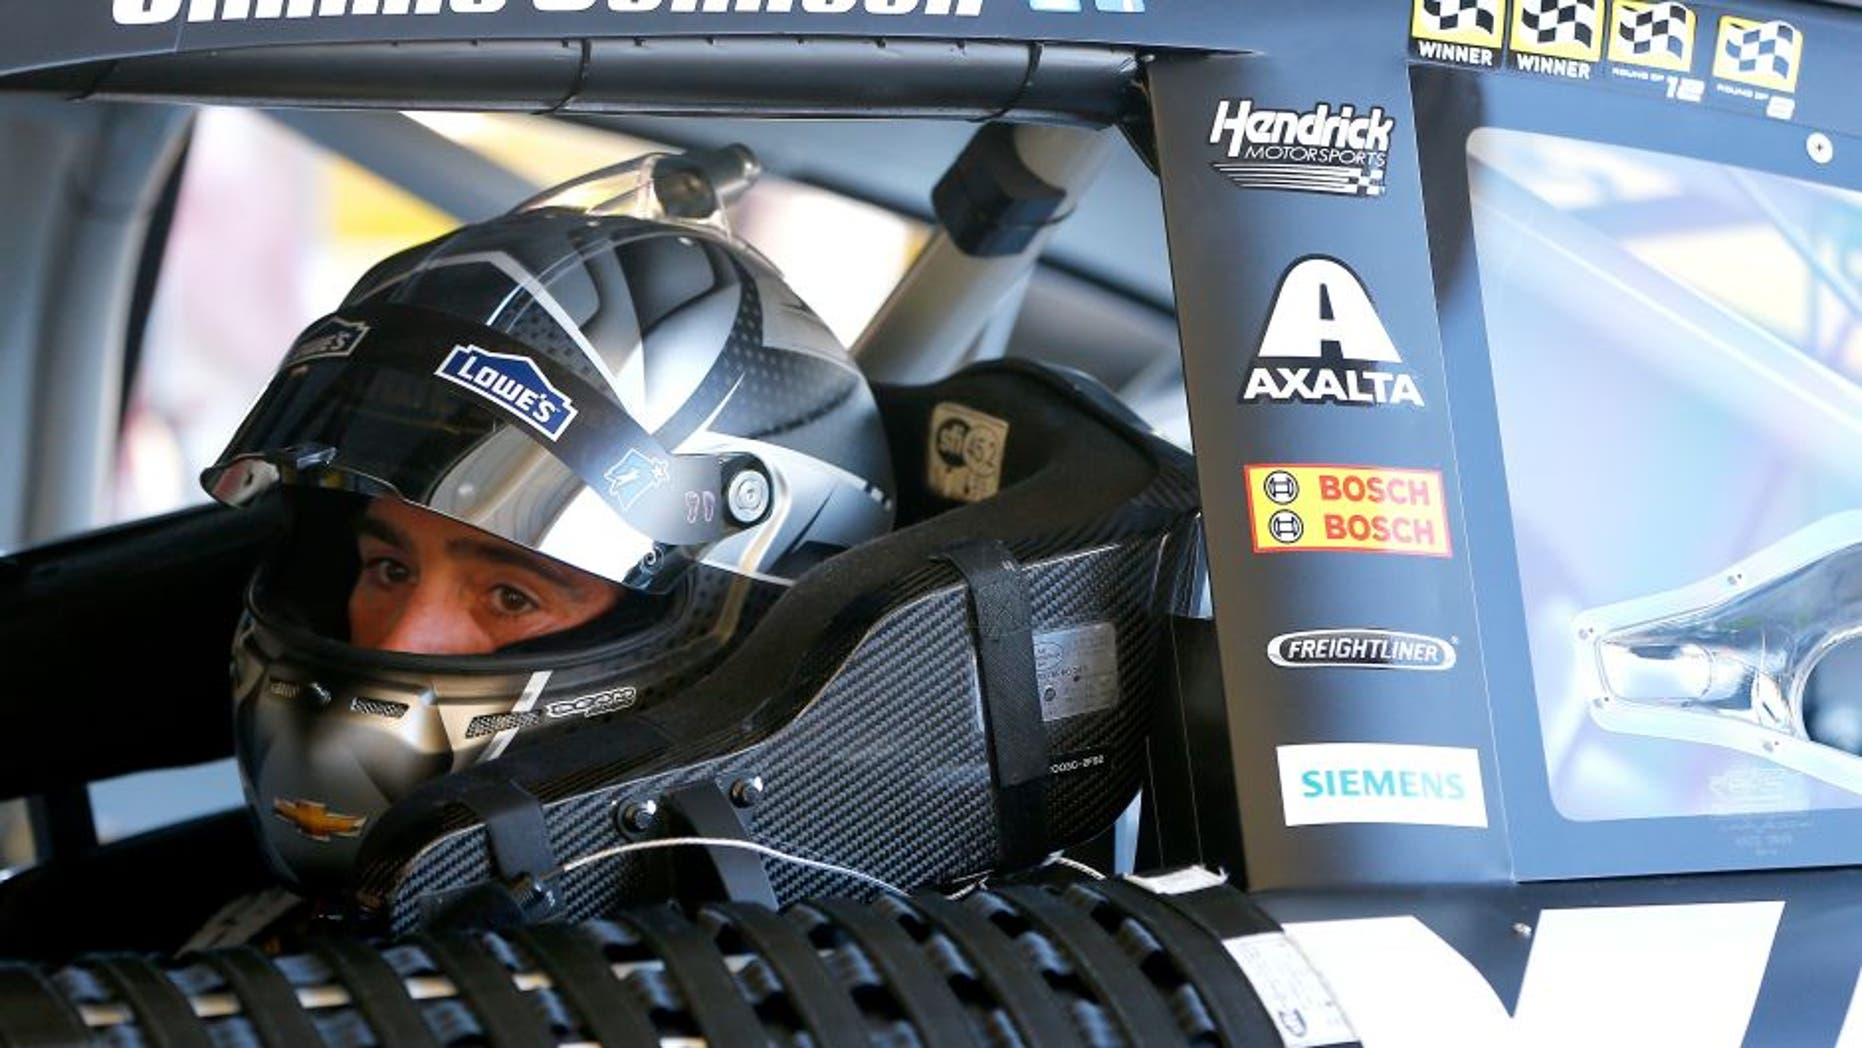 AVONDALE, AZ - NOVEMBER 11: Jimmie Johnson, driver of the #48 Kobalt Chevrolet, sits in his car during practice for the NASCAR Sprint Cup Series Can-Am 500 at Phoenix International Raceway on November 11, 2016 in Avondale, Arizona. (Photo by Jonathan Ferrey/Getty Images)